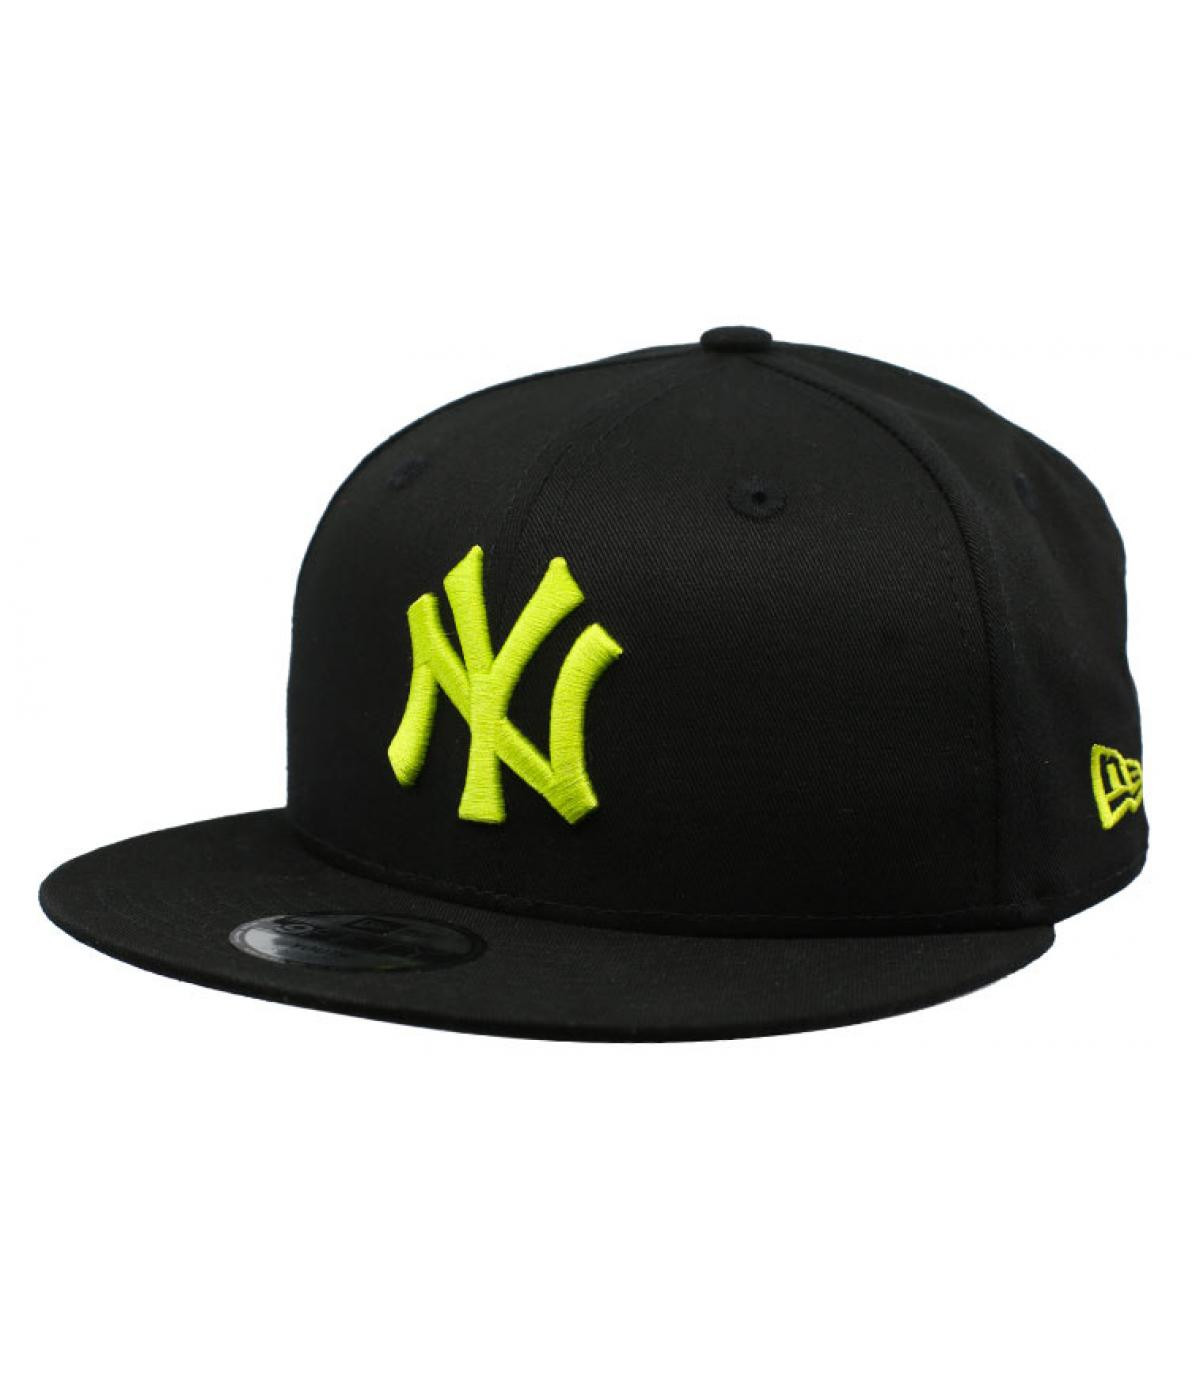 Détails Snapback Kids League Ess NY 9Fifty black cyber yellow - image 2